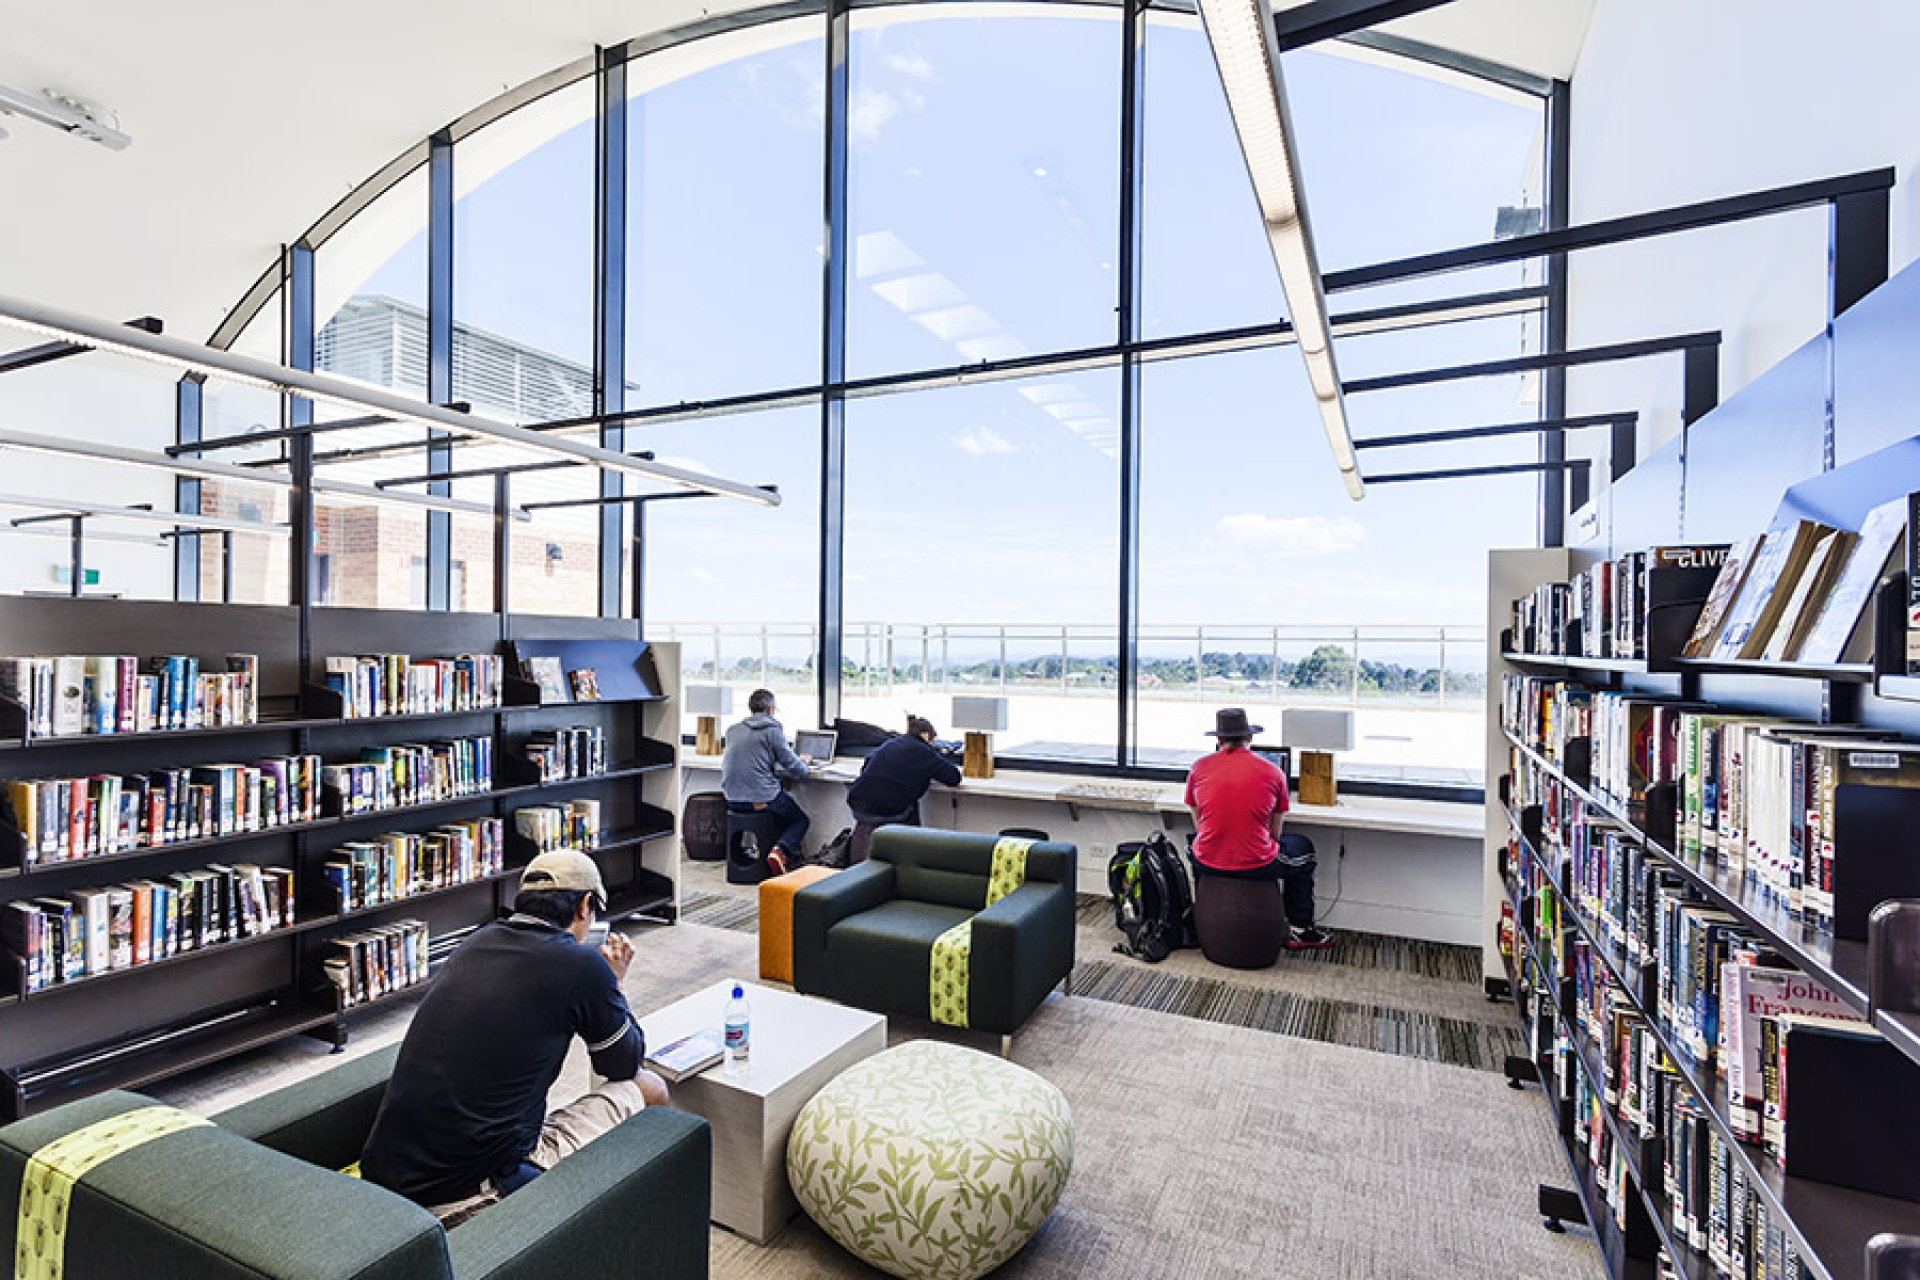 LoveReading Library of the Month #6: Blue Mountains Library